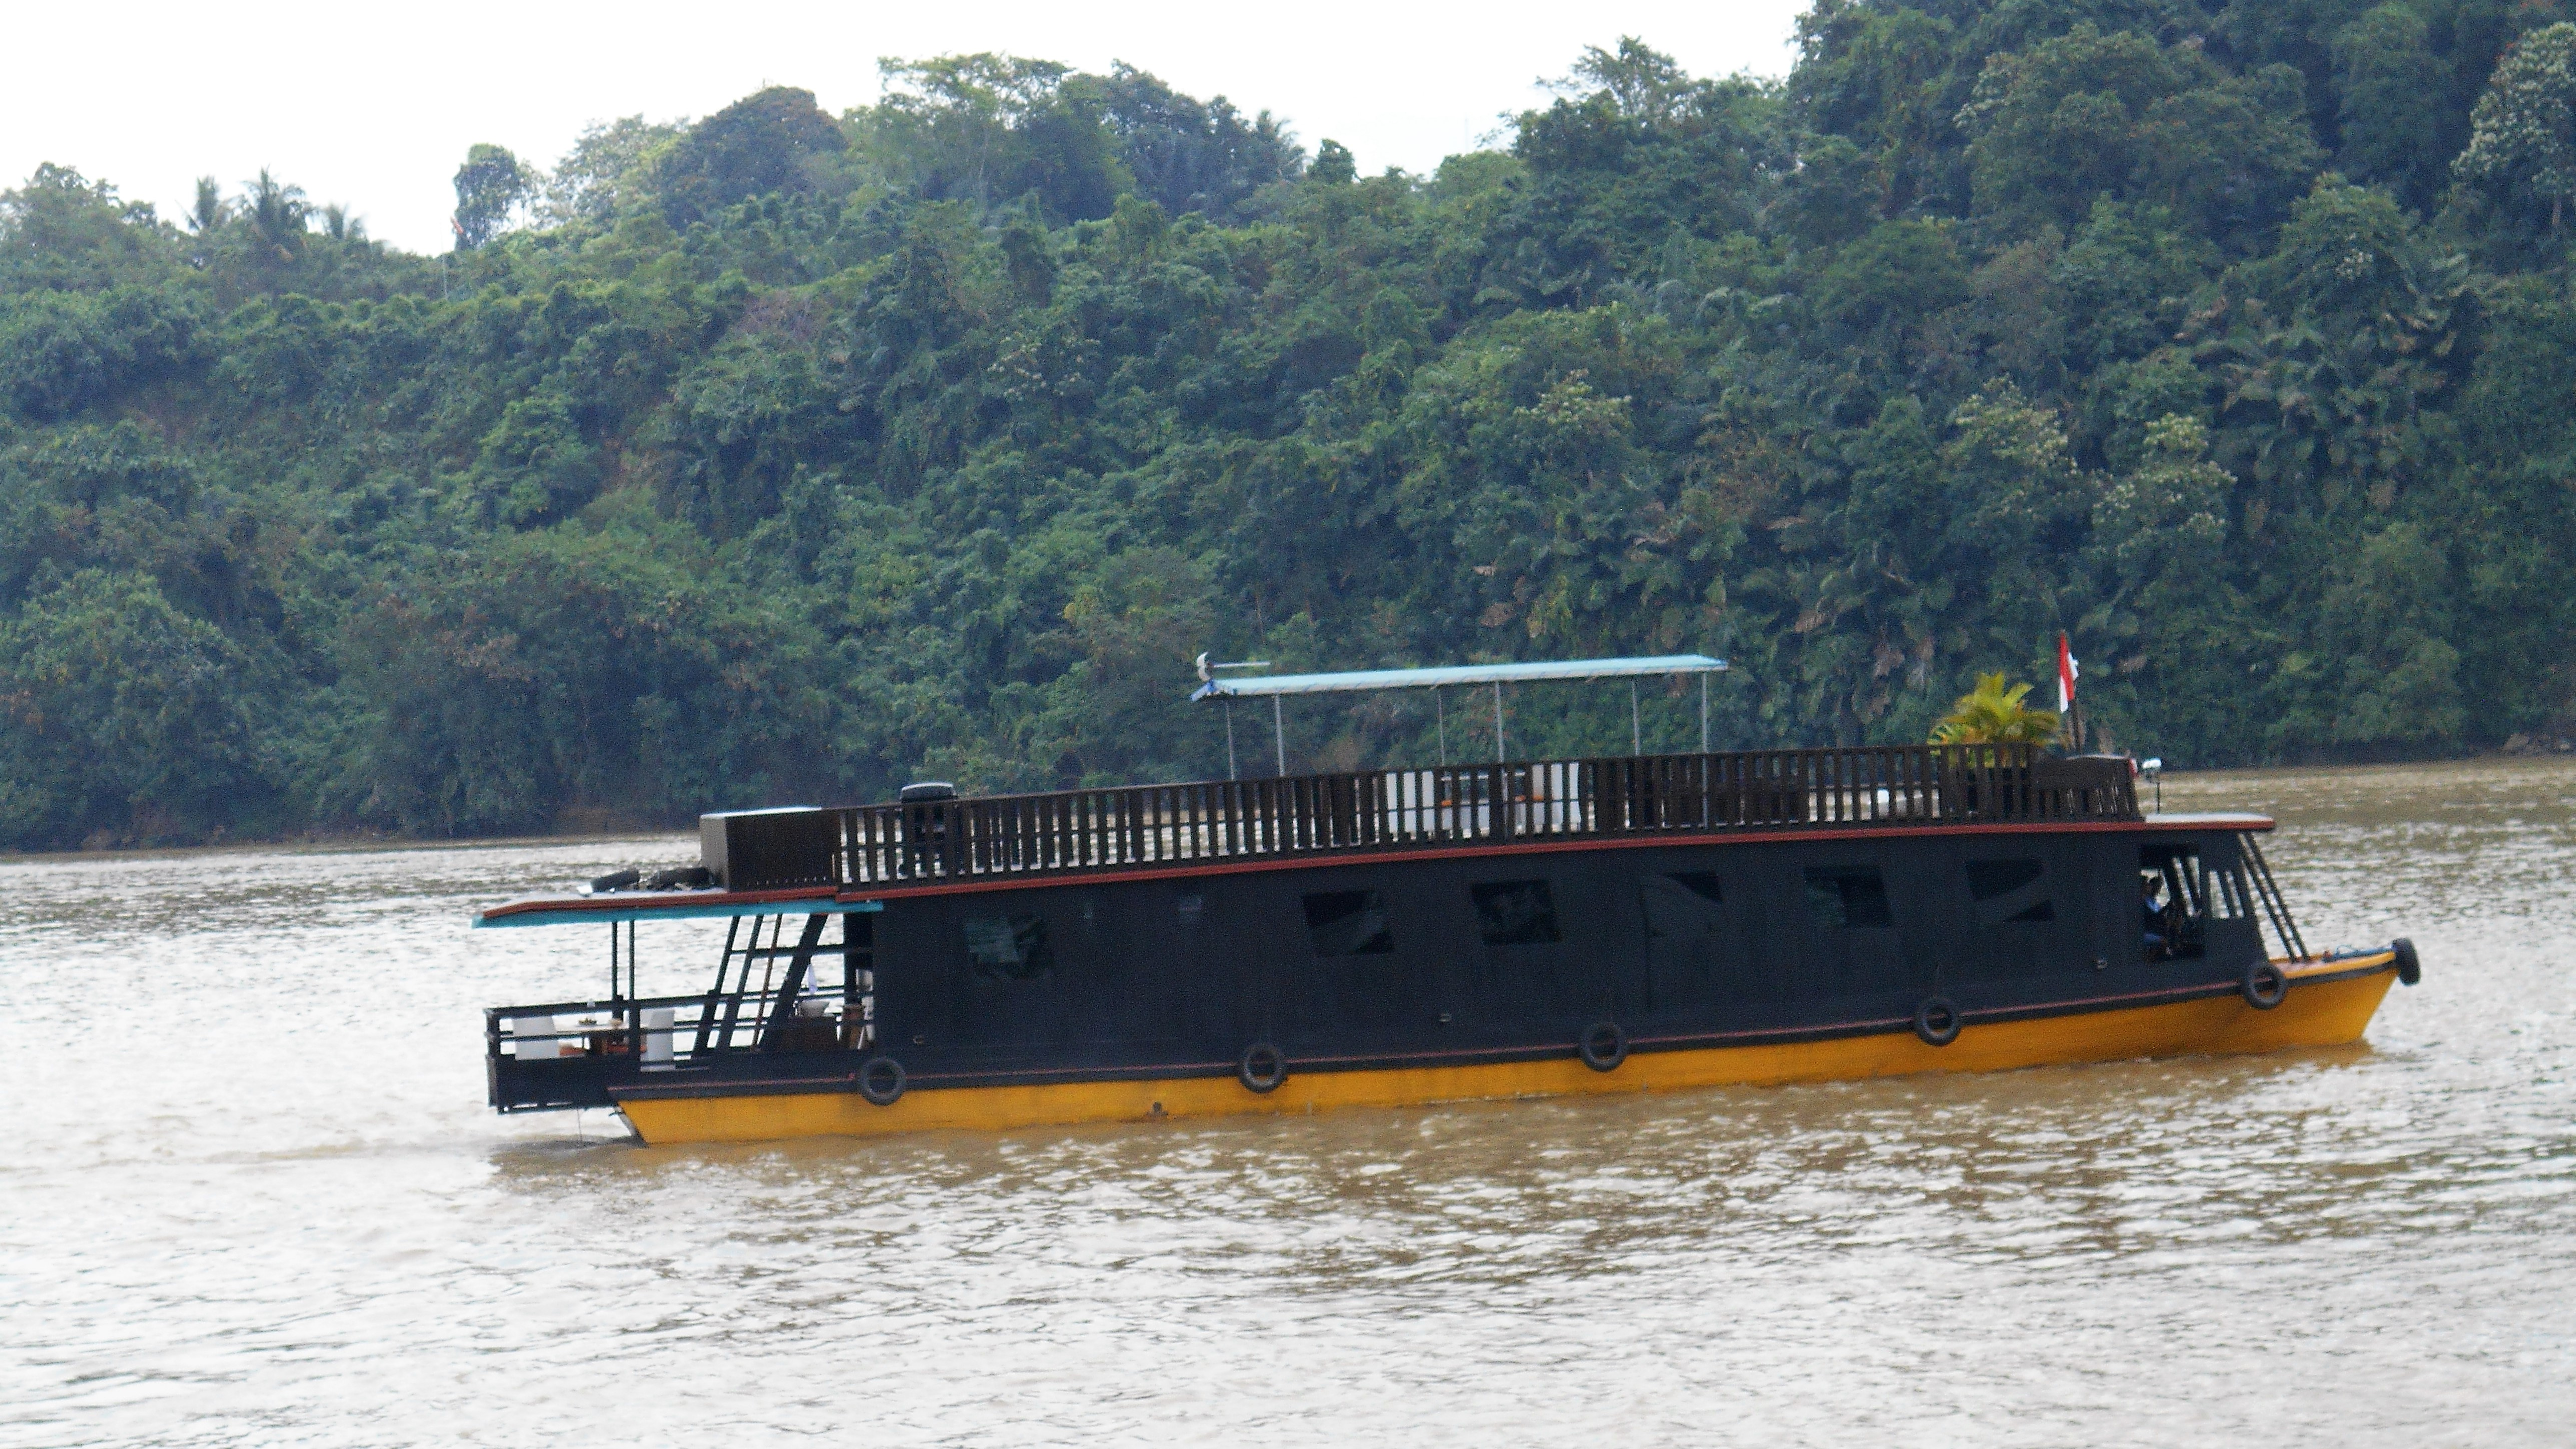 mahakam, river, cruise, luxury, yacht, houseboat, orangutan, tour, borneo, kalimantan, trip, journey, cruise, wildlife, jungle, forest, rain forest, travel, canoe, river, flora, fuana, guide, car, safari, indonesia